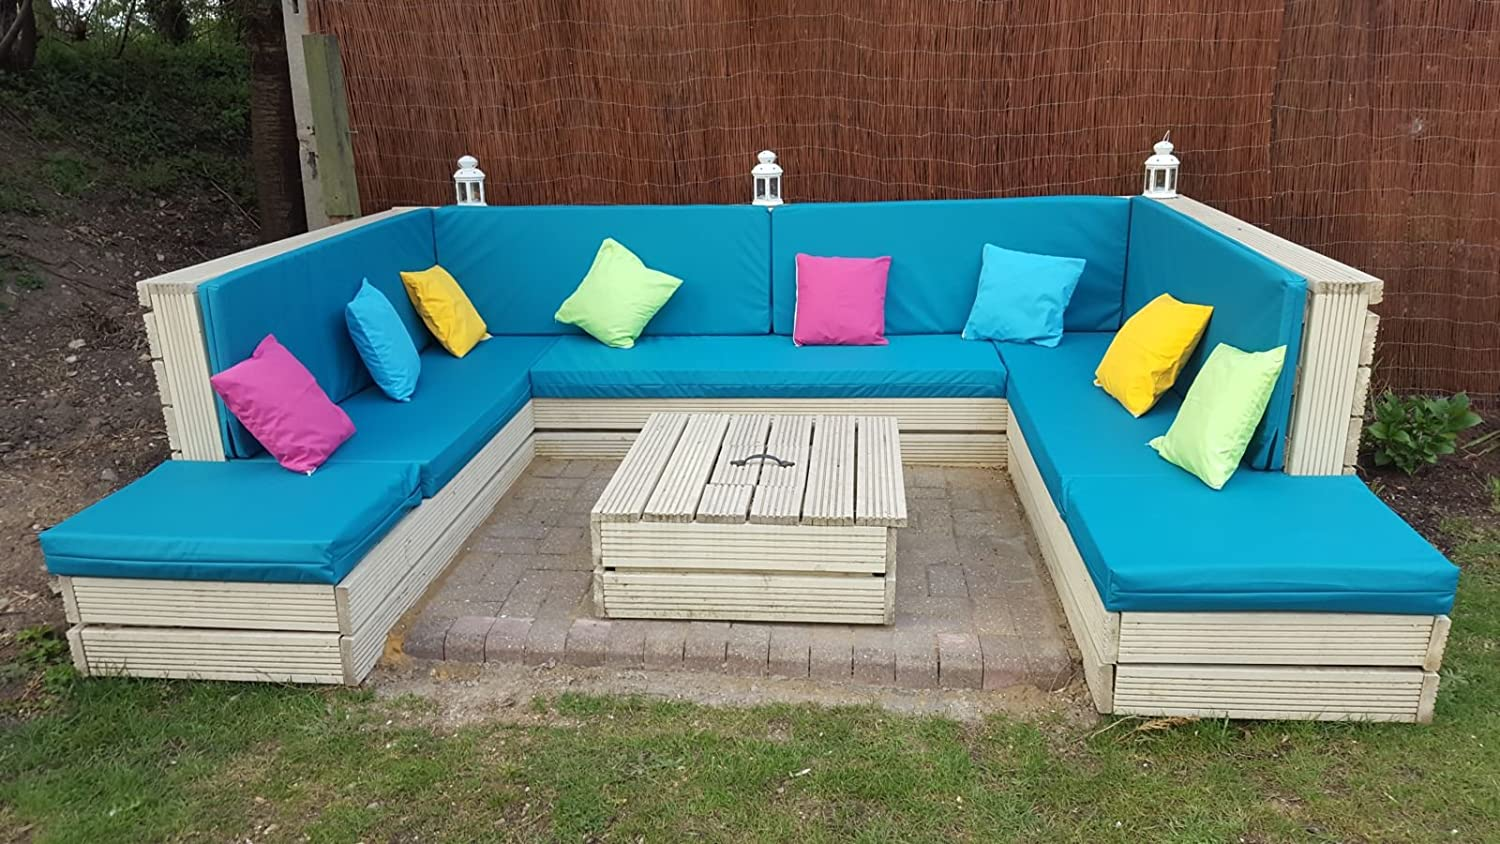 Made to Measure - Quote & Fabric Samples for waterproof cushions for - Pallet Furniture - Rattan Furniture - Garden Furniture - Campervans - Caravans & Boats - Over 20 Colours Zippy UK Ltd